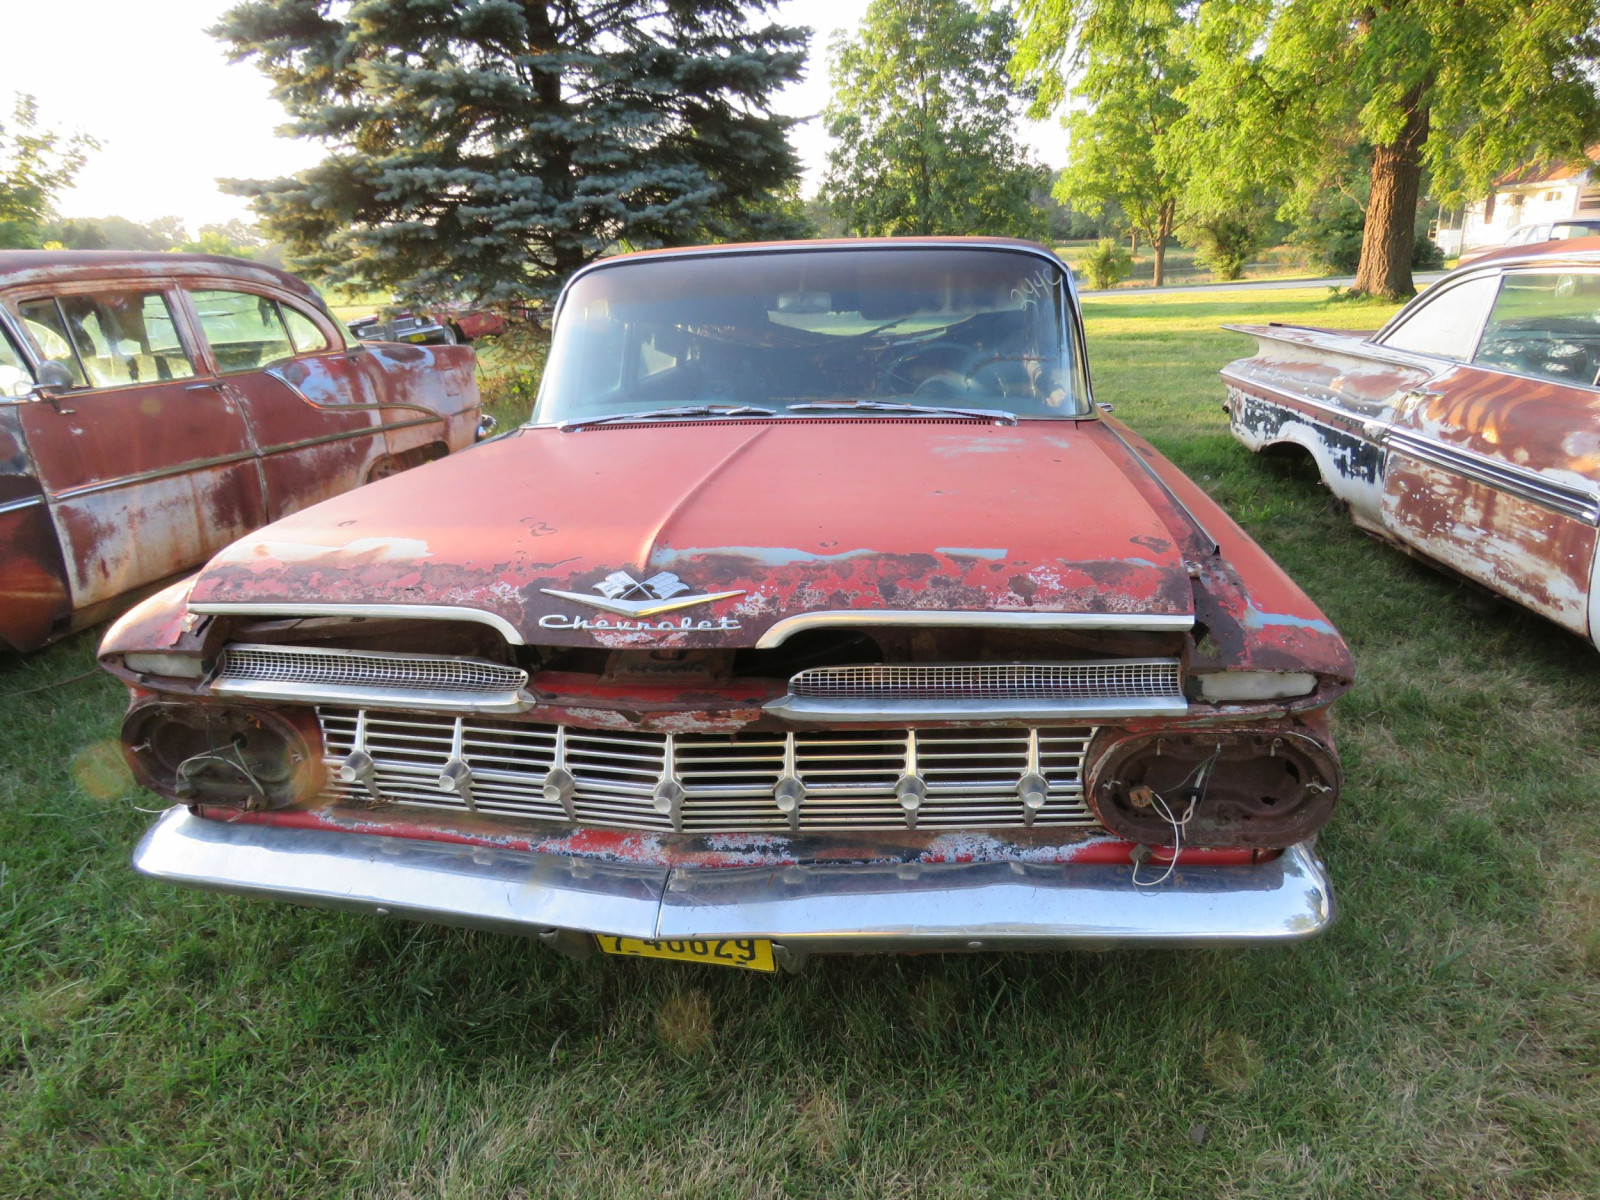 1959 Chevrolet 4dr Sedan for parts or project - Image 2